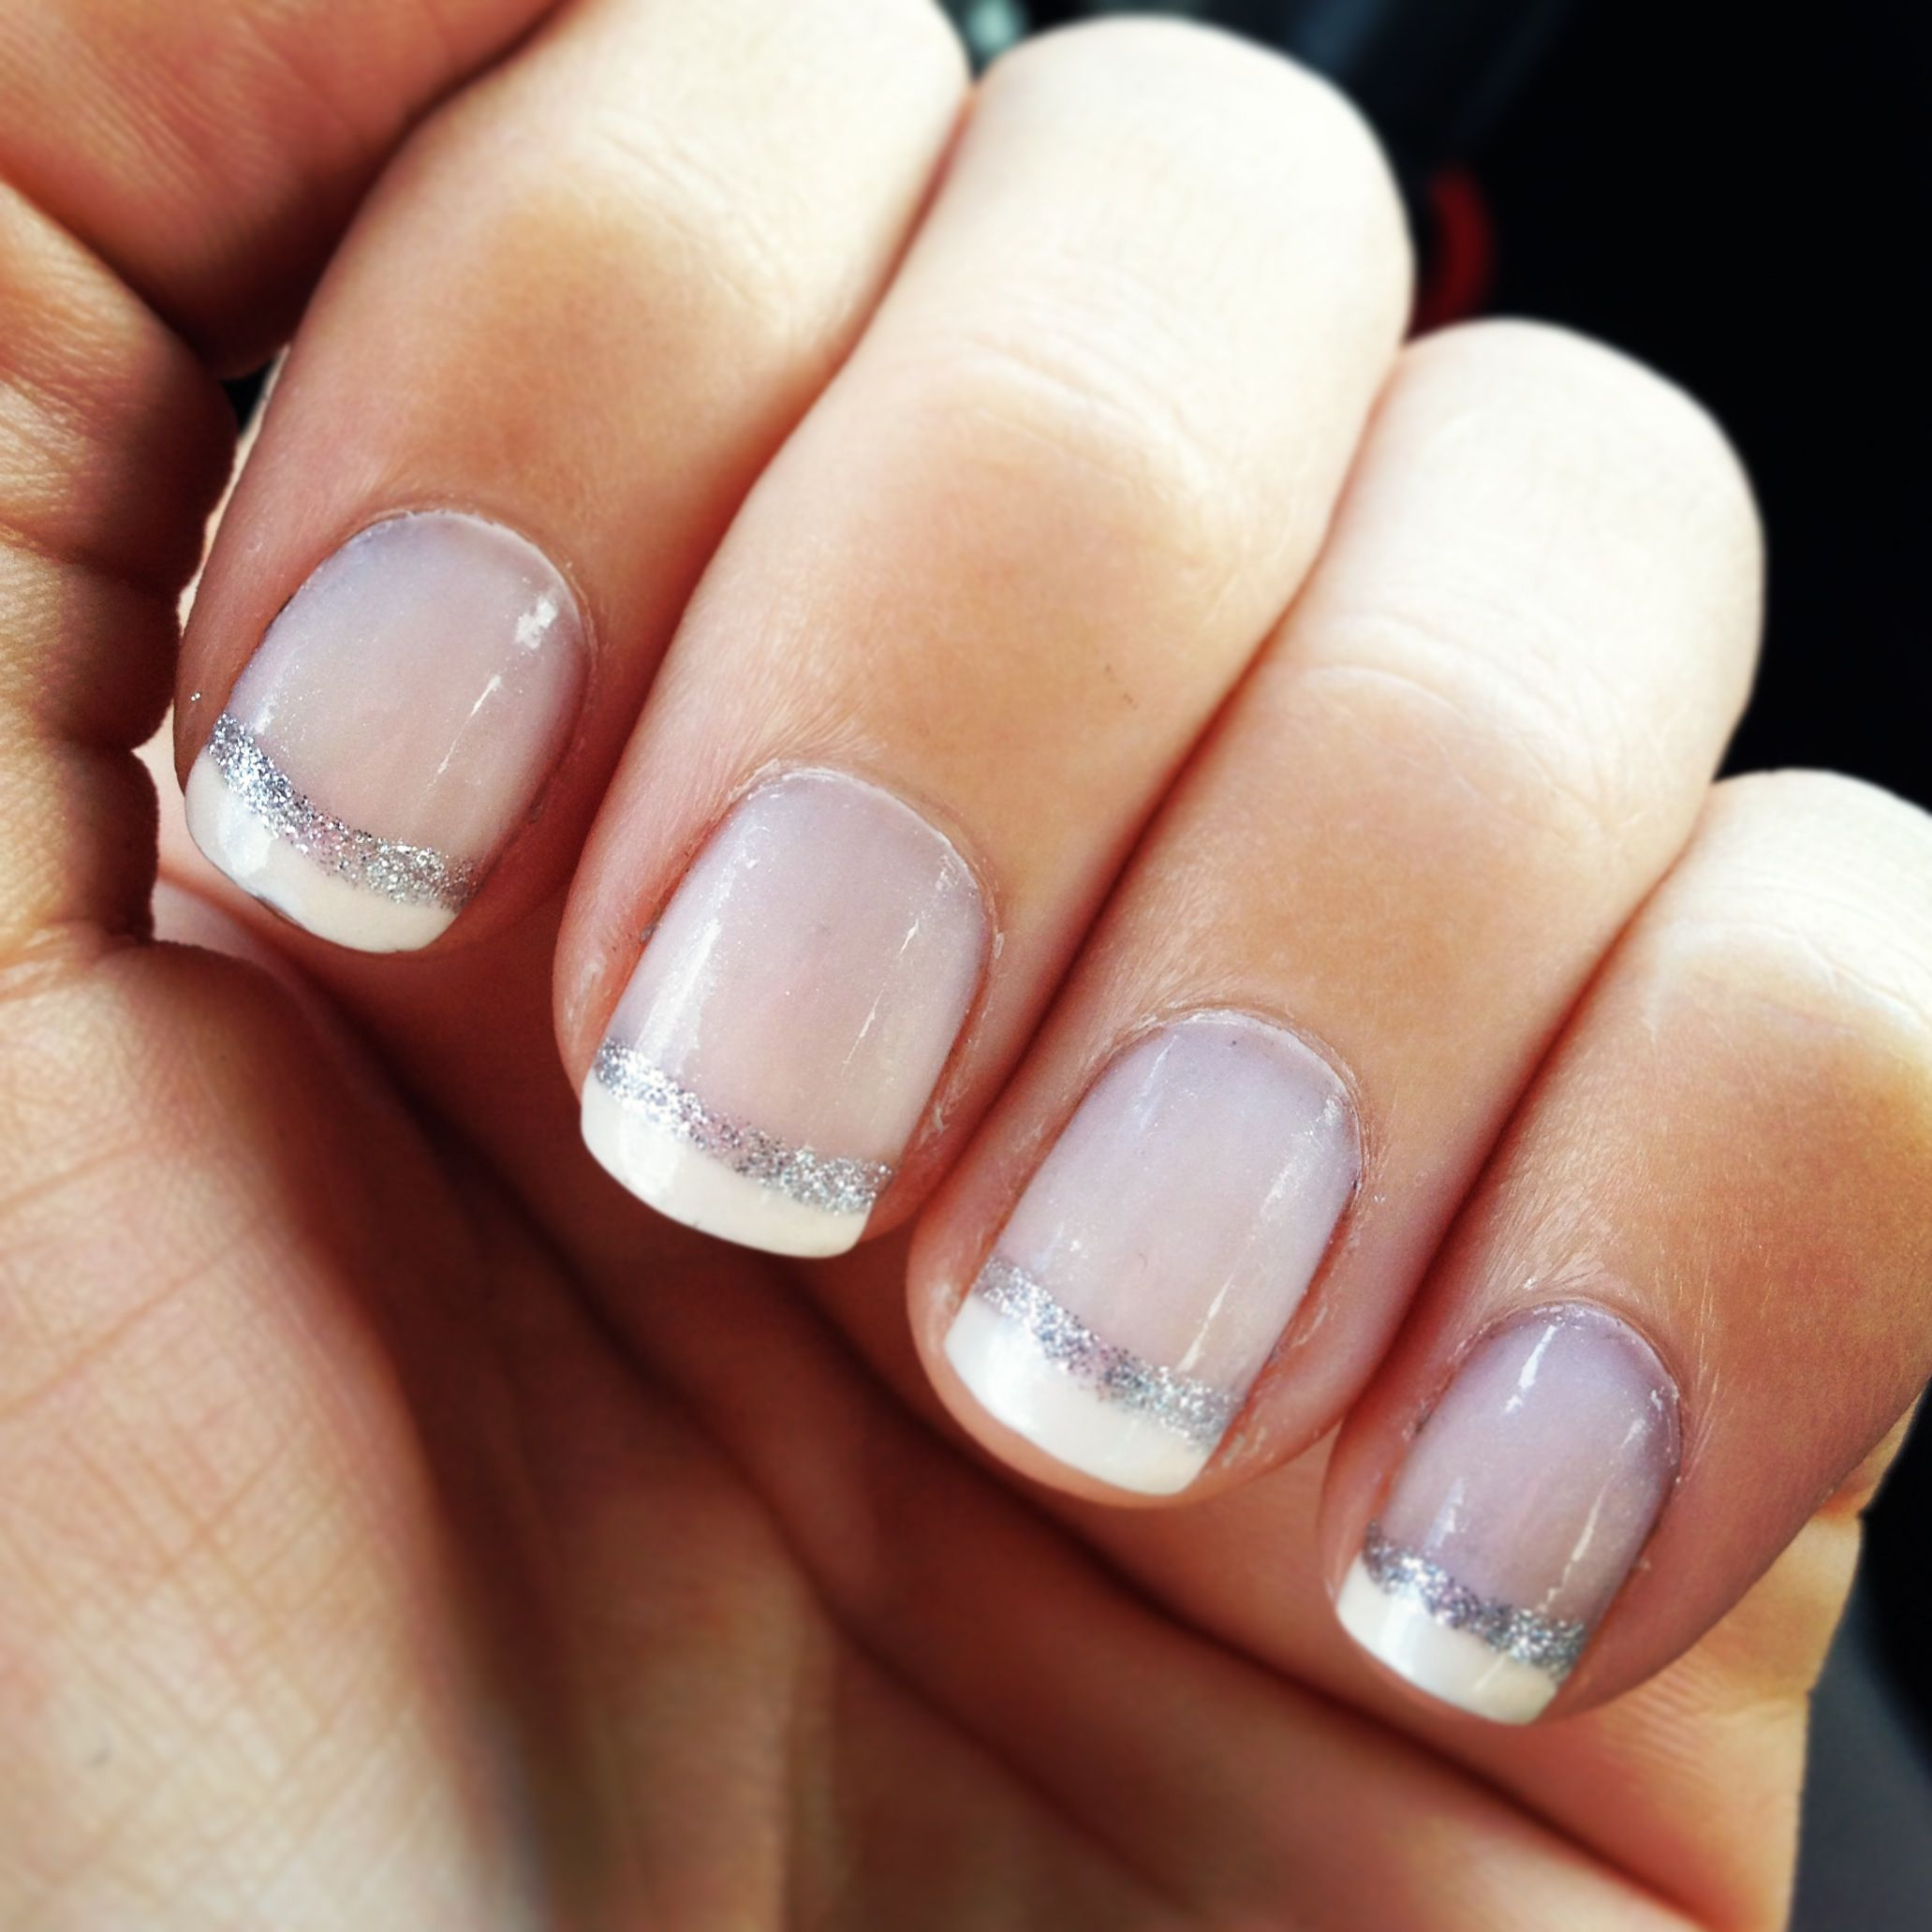 DIY: French manicure with a line of glitter for a classy finished ...